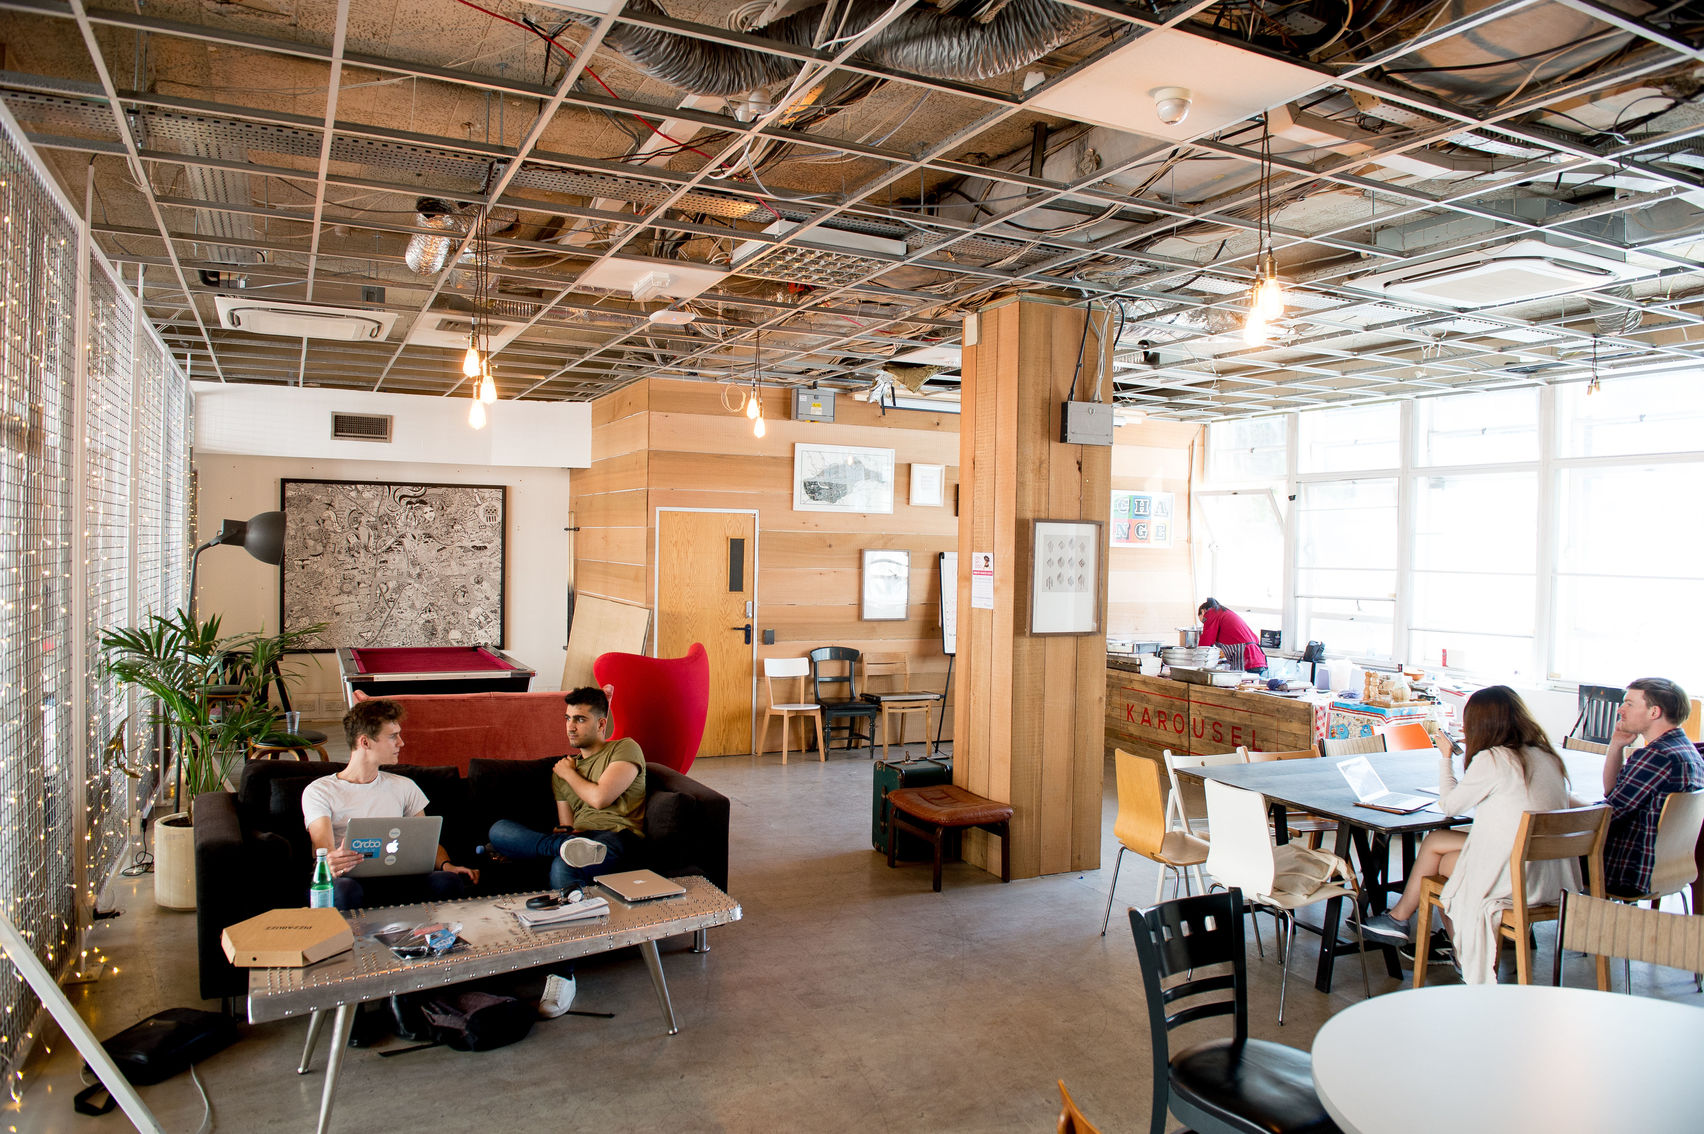 A co-working space with sofas and desks.